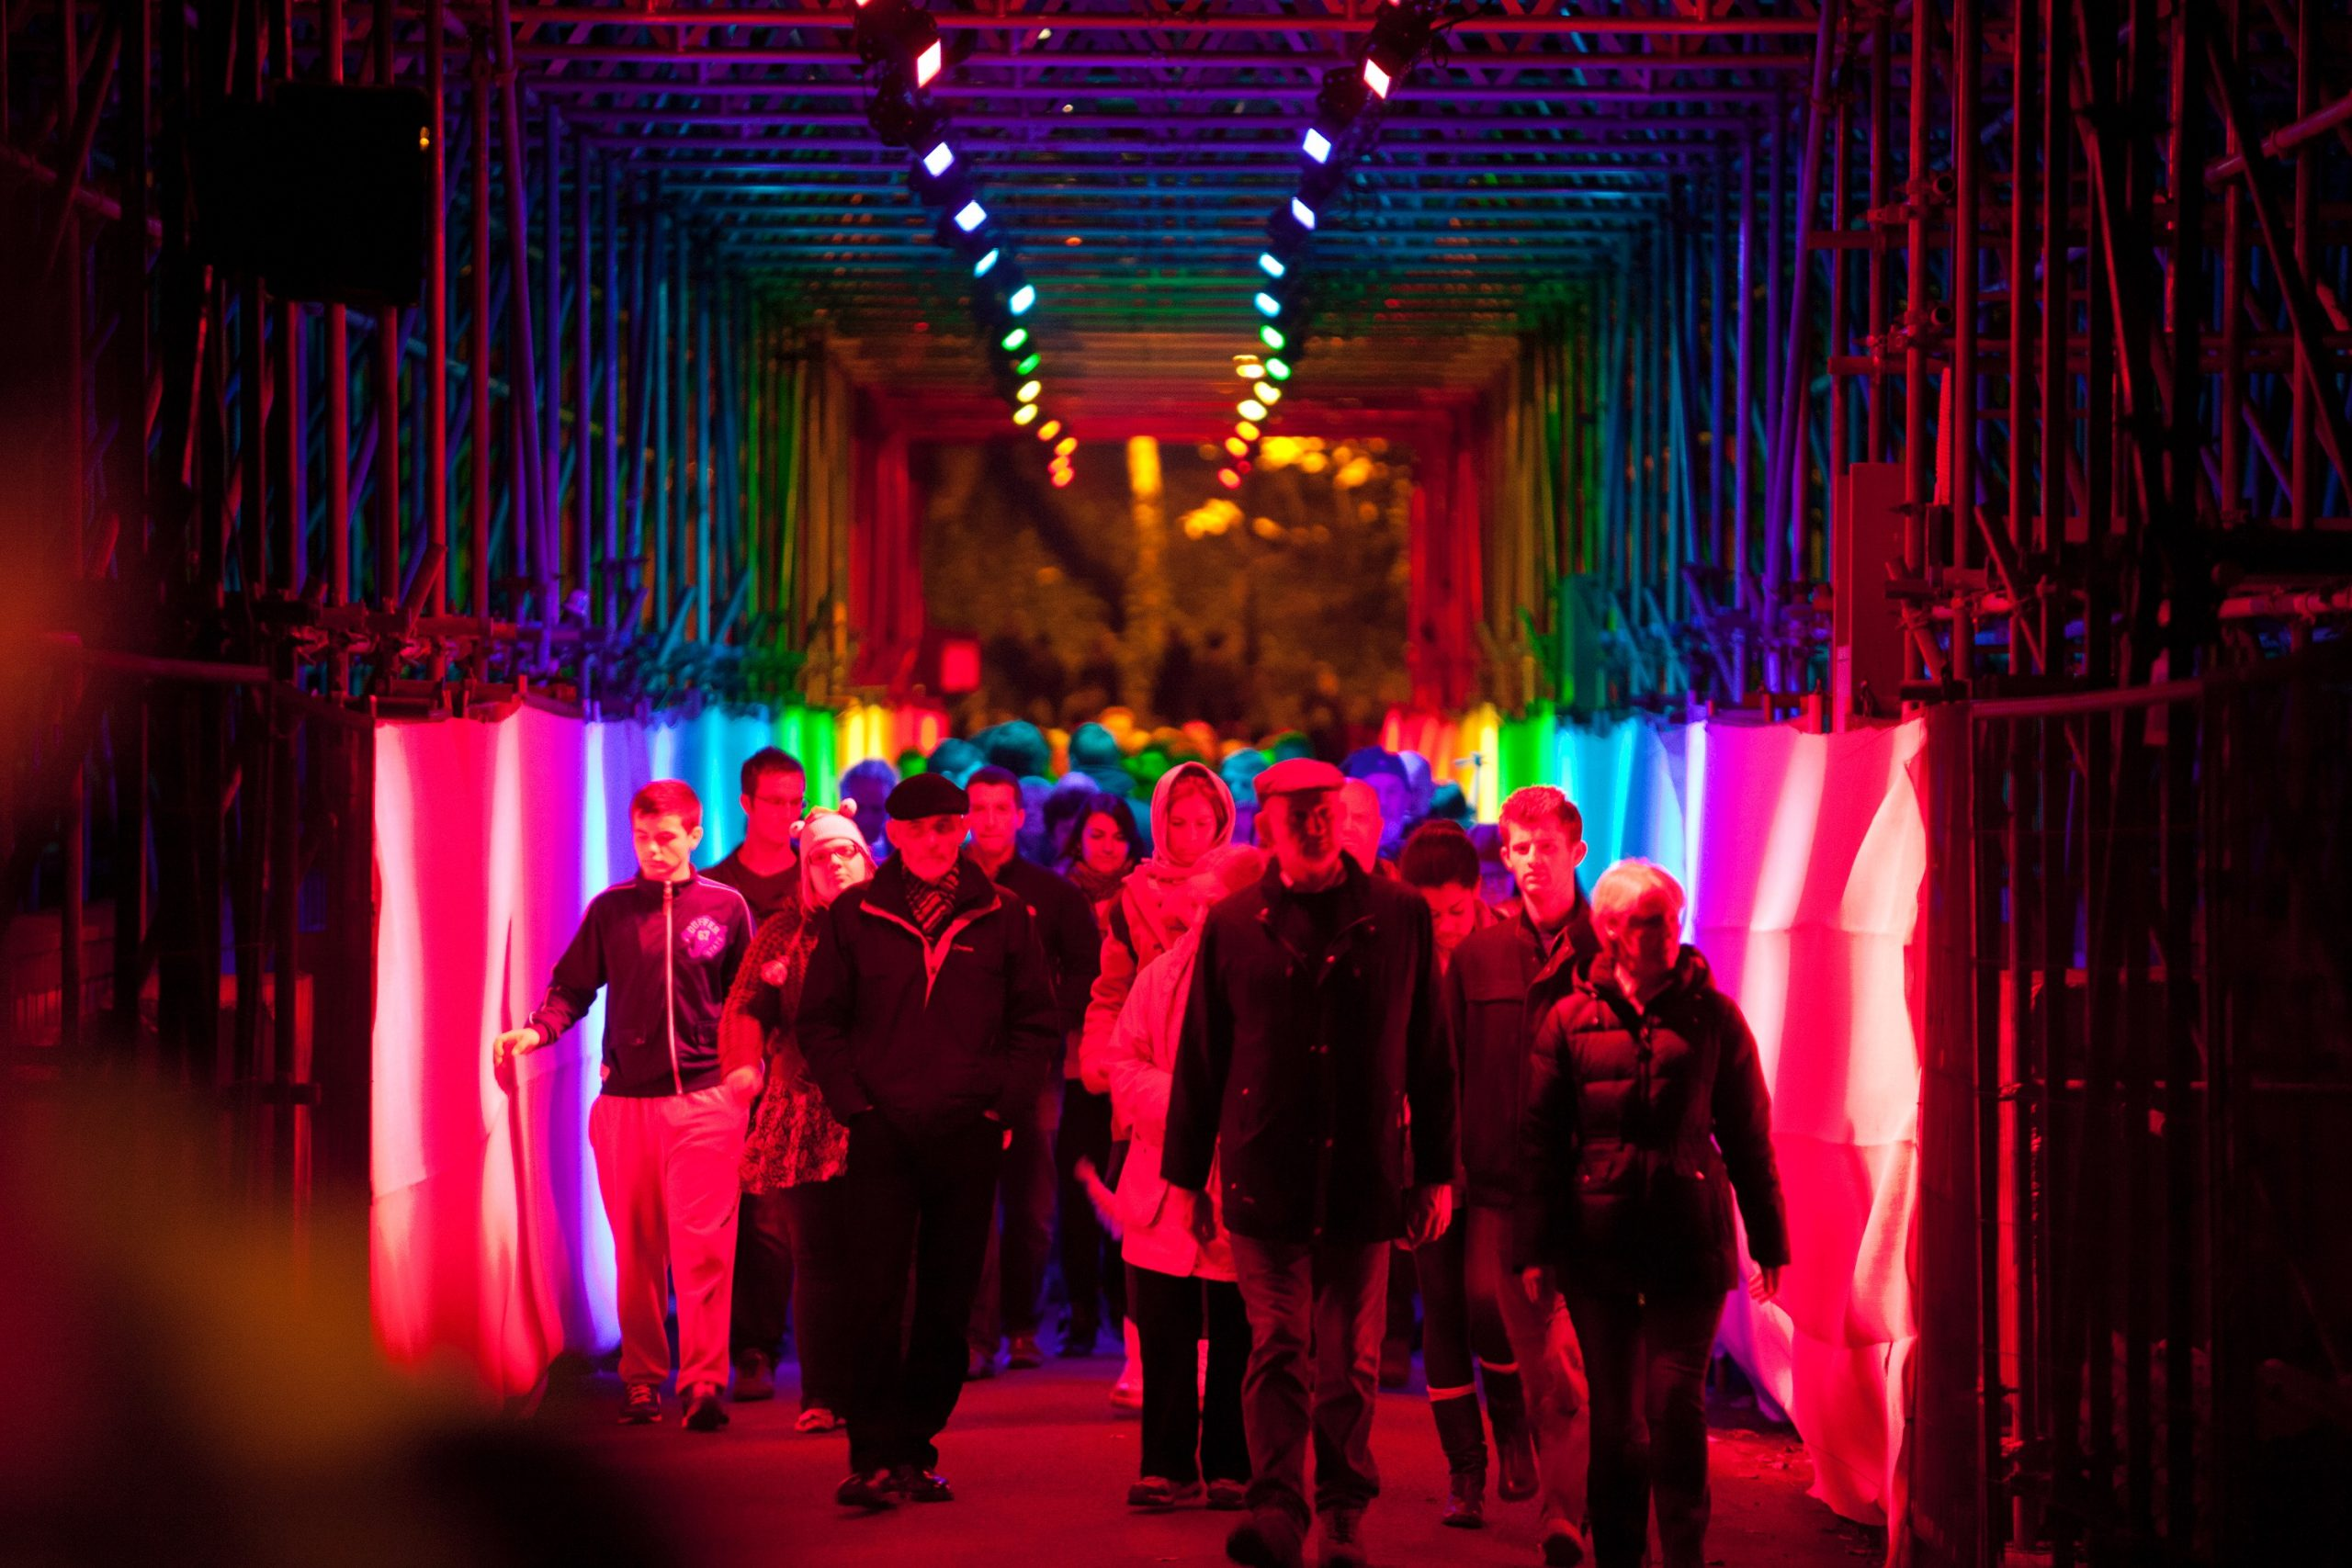 People walking through a square tunnel lit up in rainbow colours